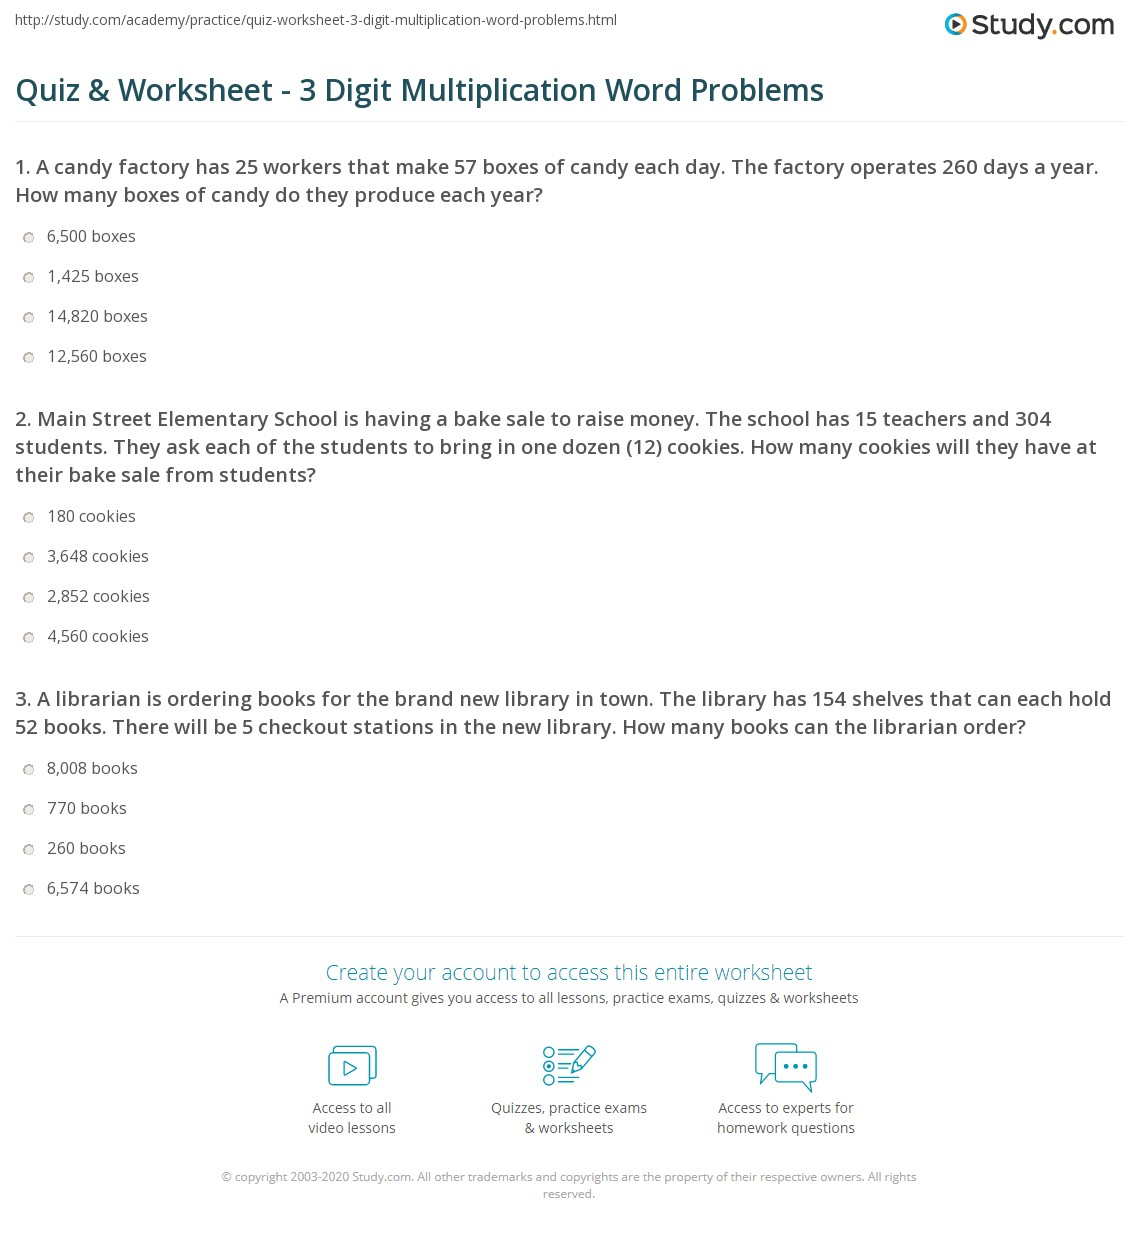 Quiz Worksheet 3 Digit Multiplication Word Problems